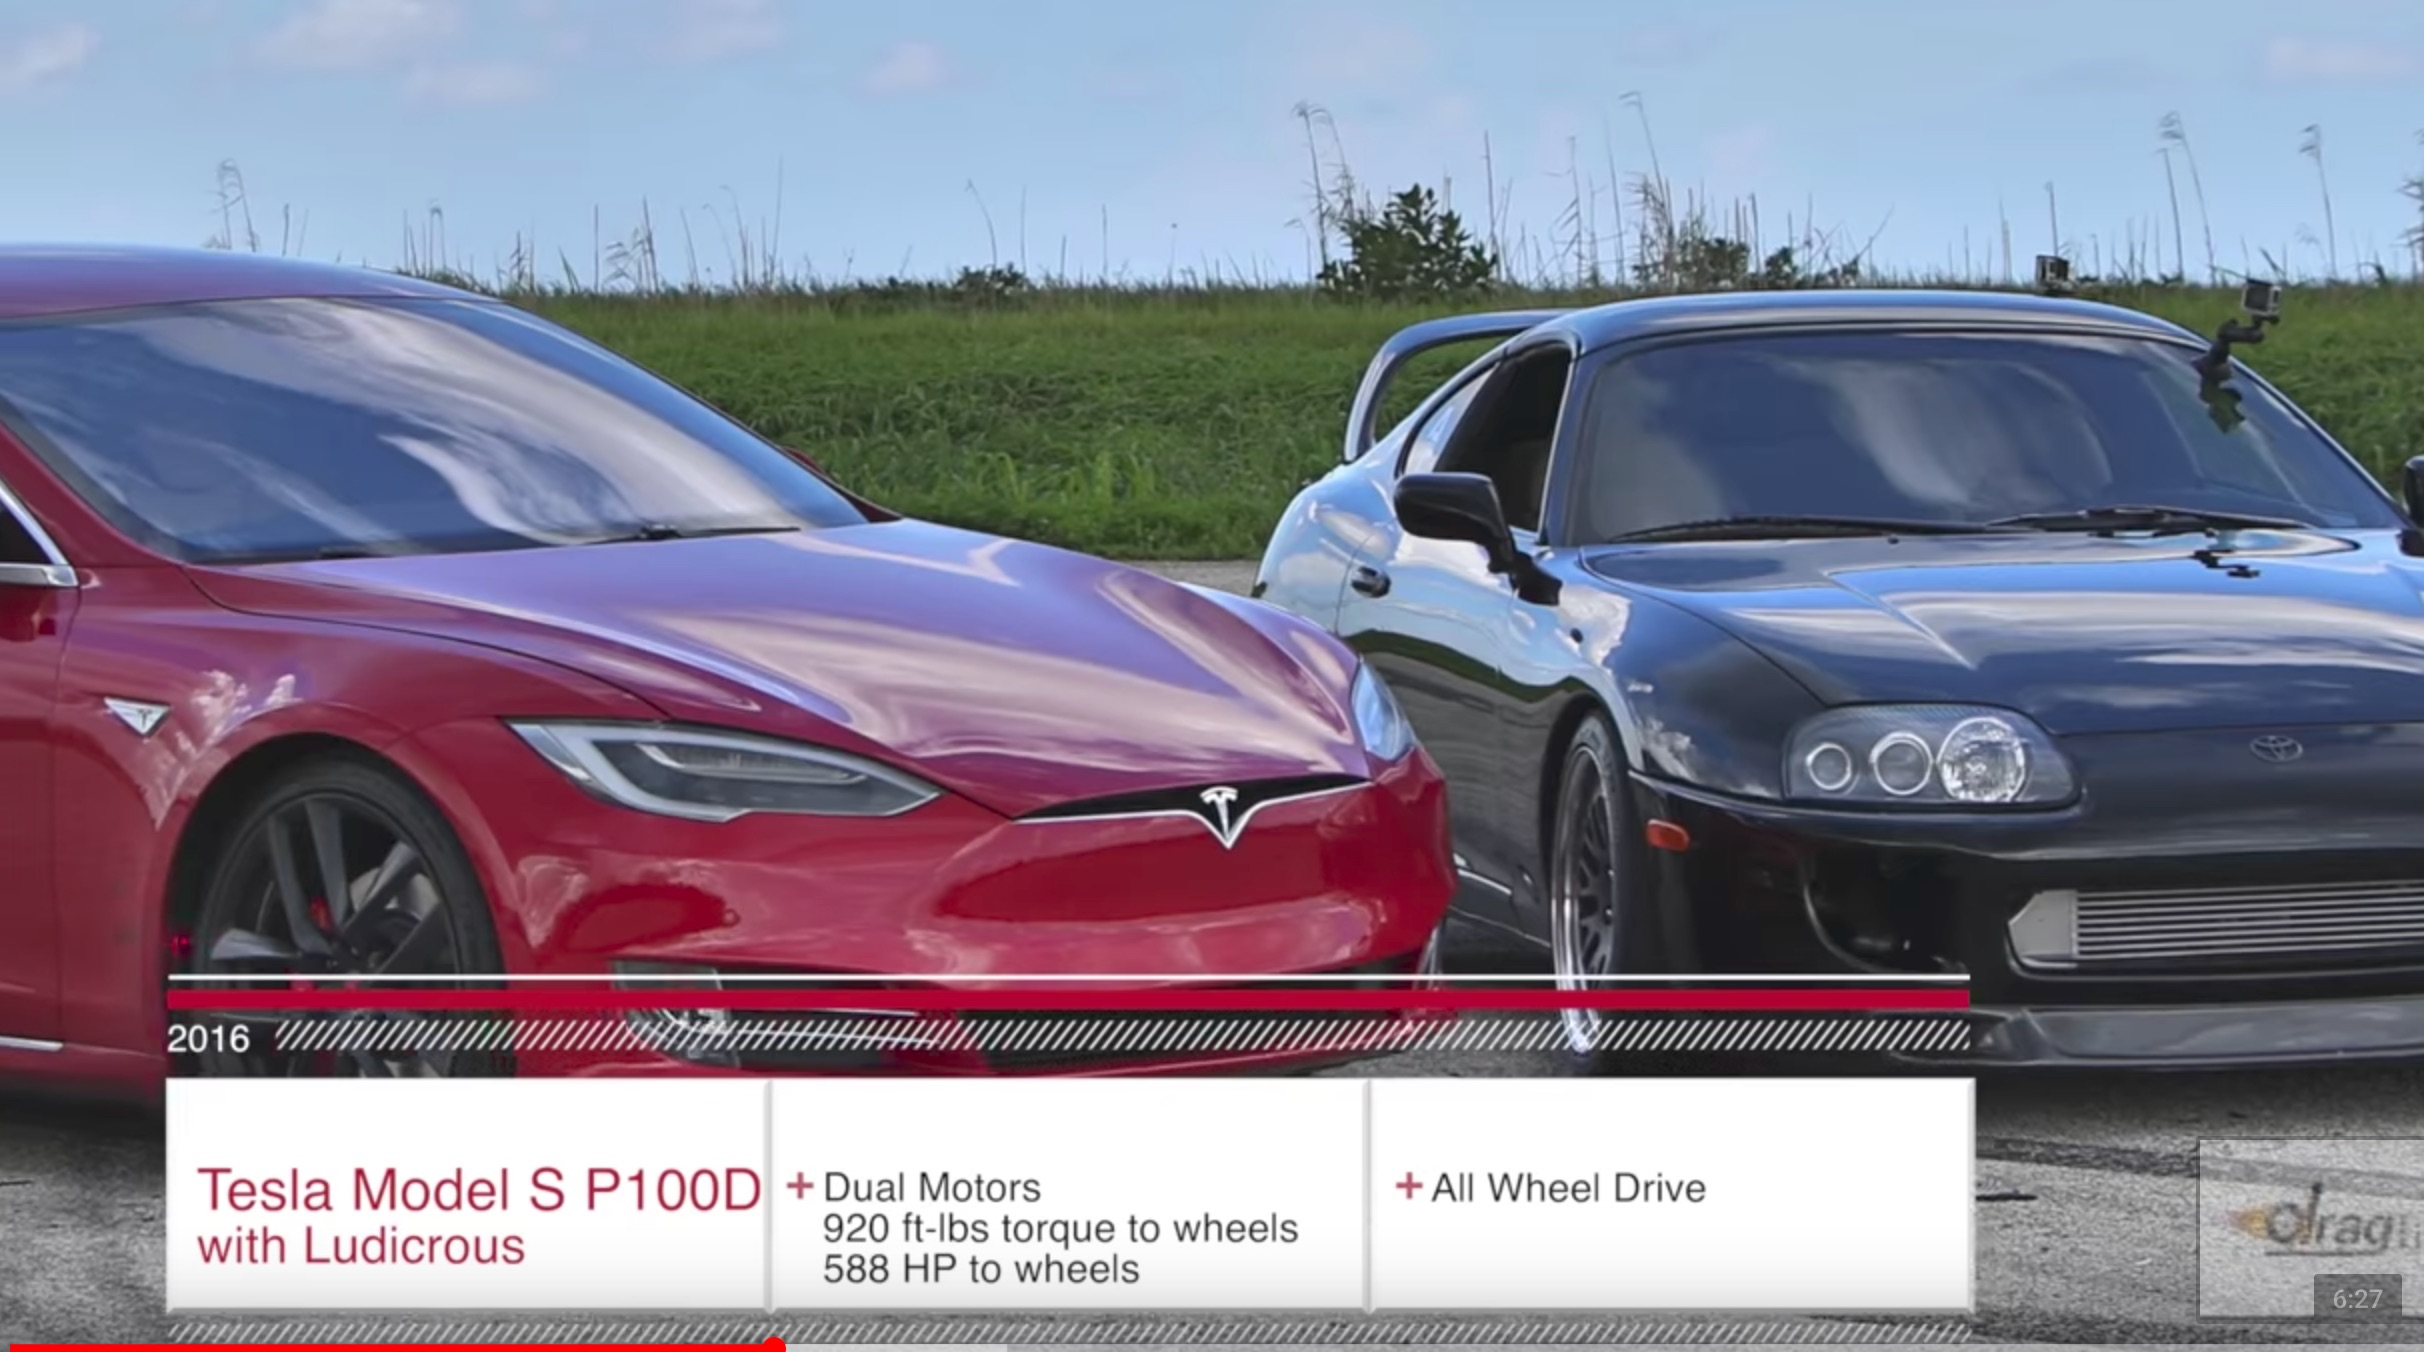 Tesla Model S P100D vs 1 000HP Toyota Supra Turbo in drag race and